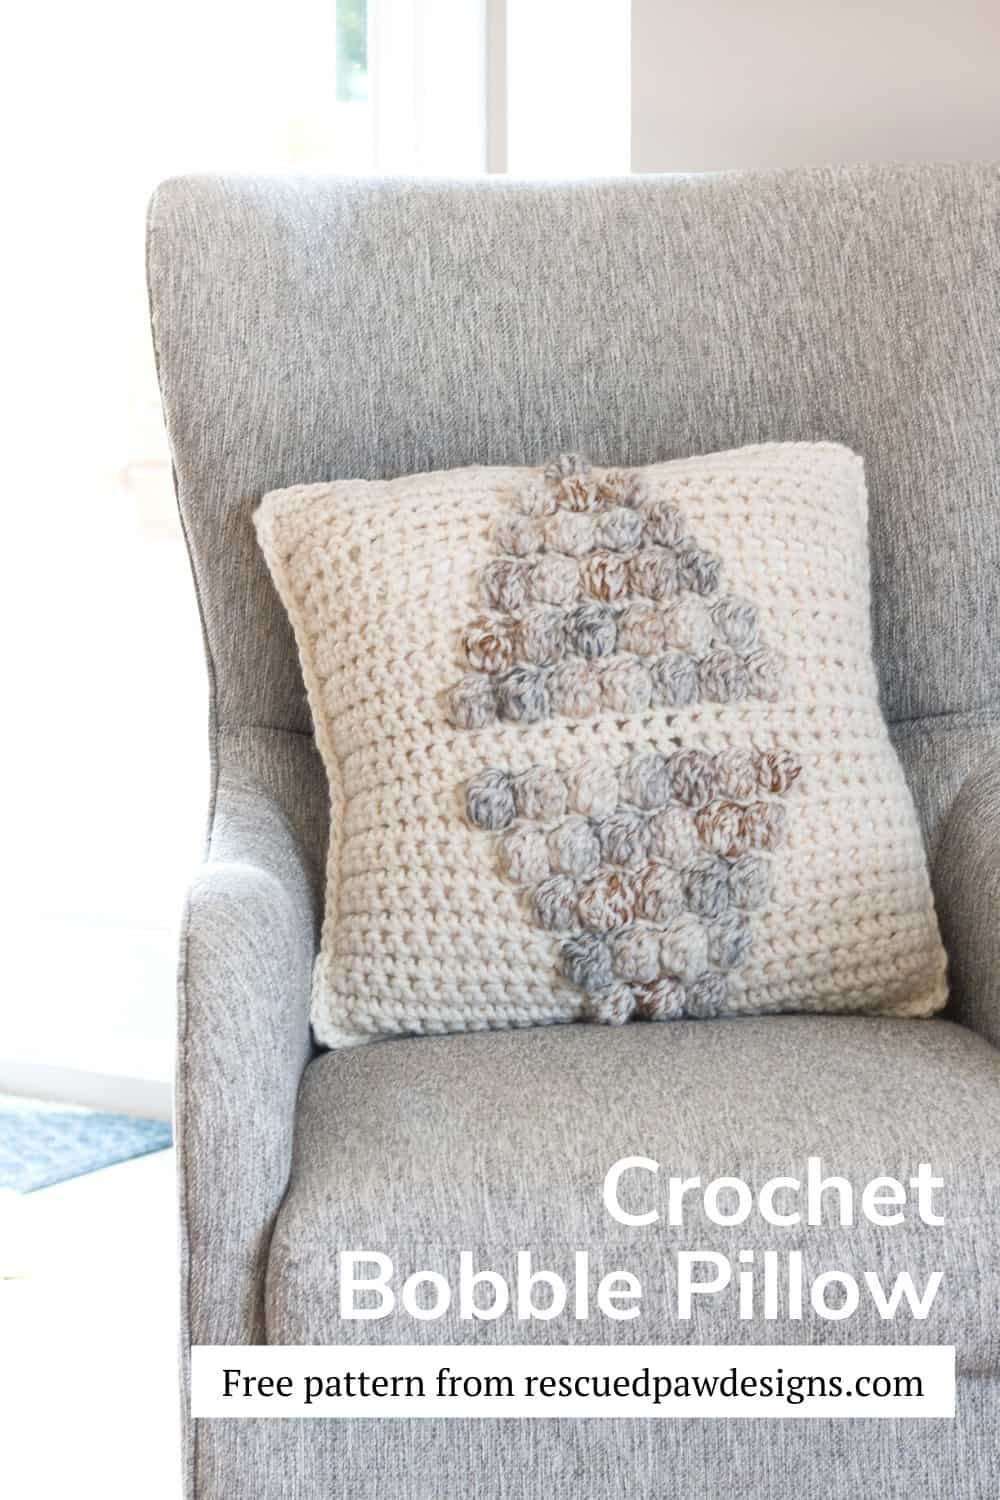 Free Crochet Bobble Pillow Pattern via @rescuedpaw